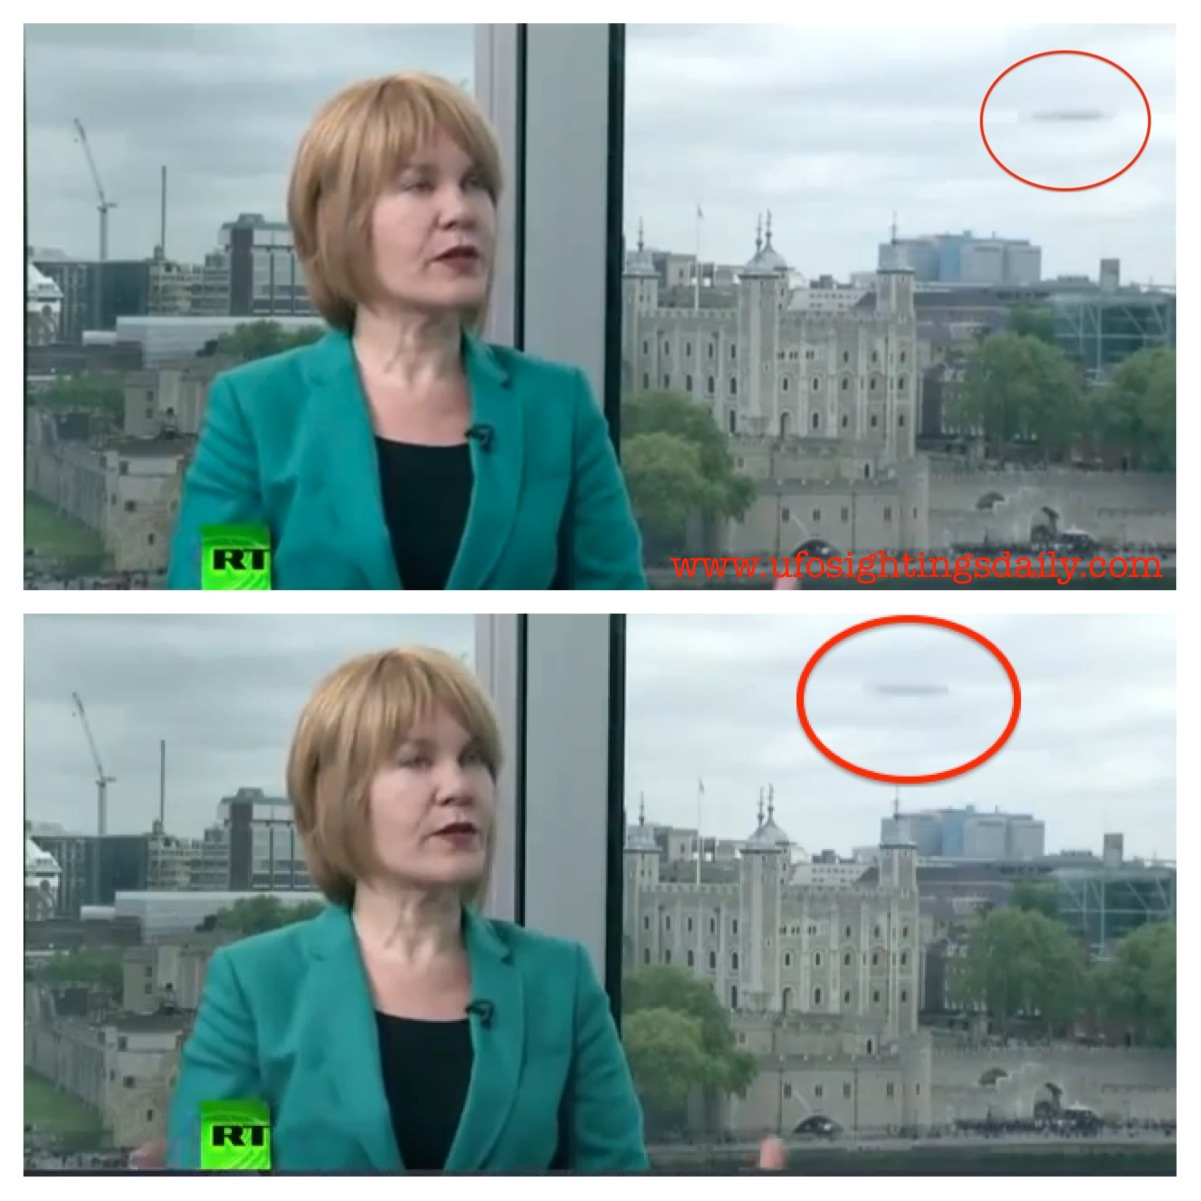 Ufo sightings daily: ufo shows up on russia today news in london